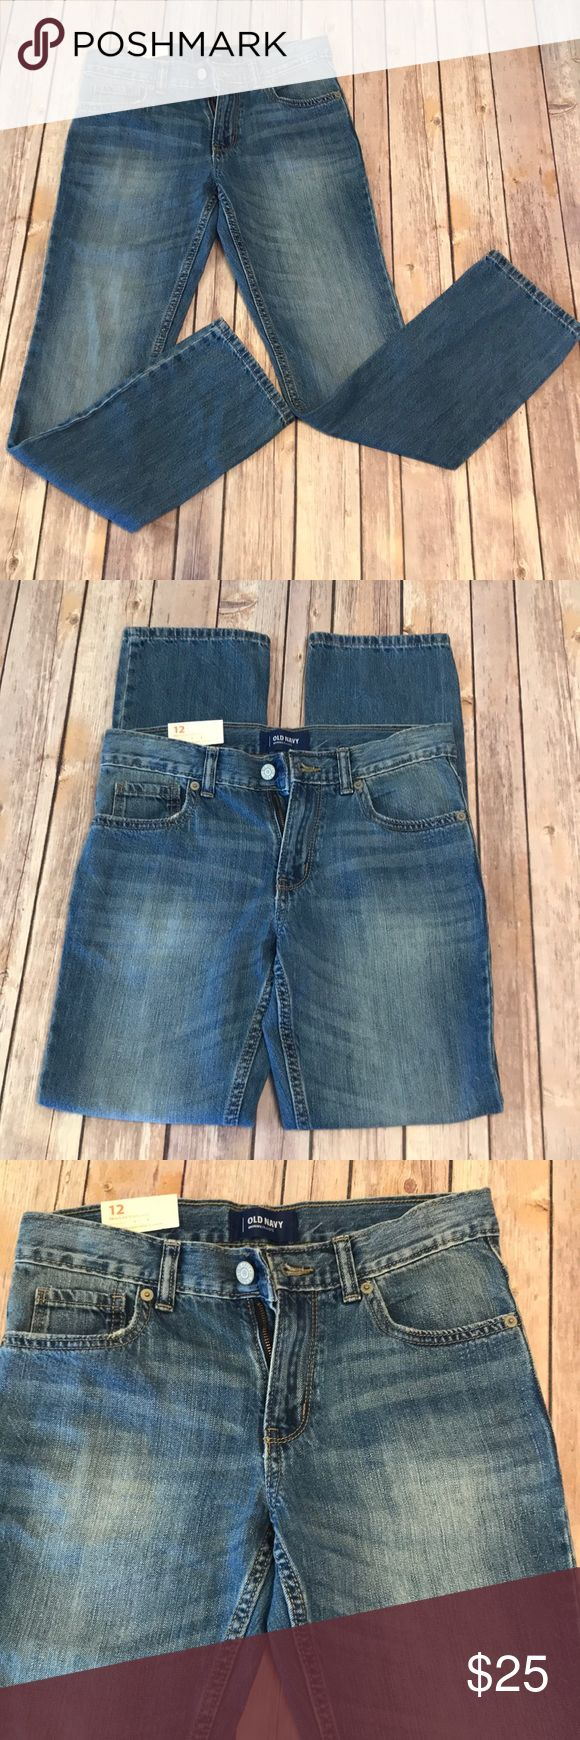 """NWT old navy skinny jeans New with tags!! Old navy skinny jeans size 12! In perfect condition! 10/10!   Waist is about 14.5"""" Inseam is about 27.5"""" Old Navy Jeans Skinny"""